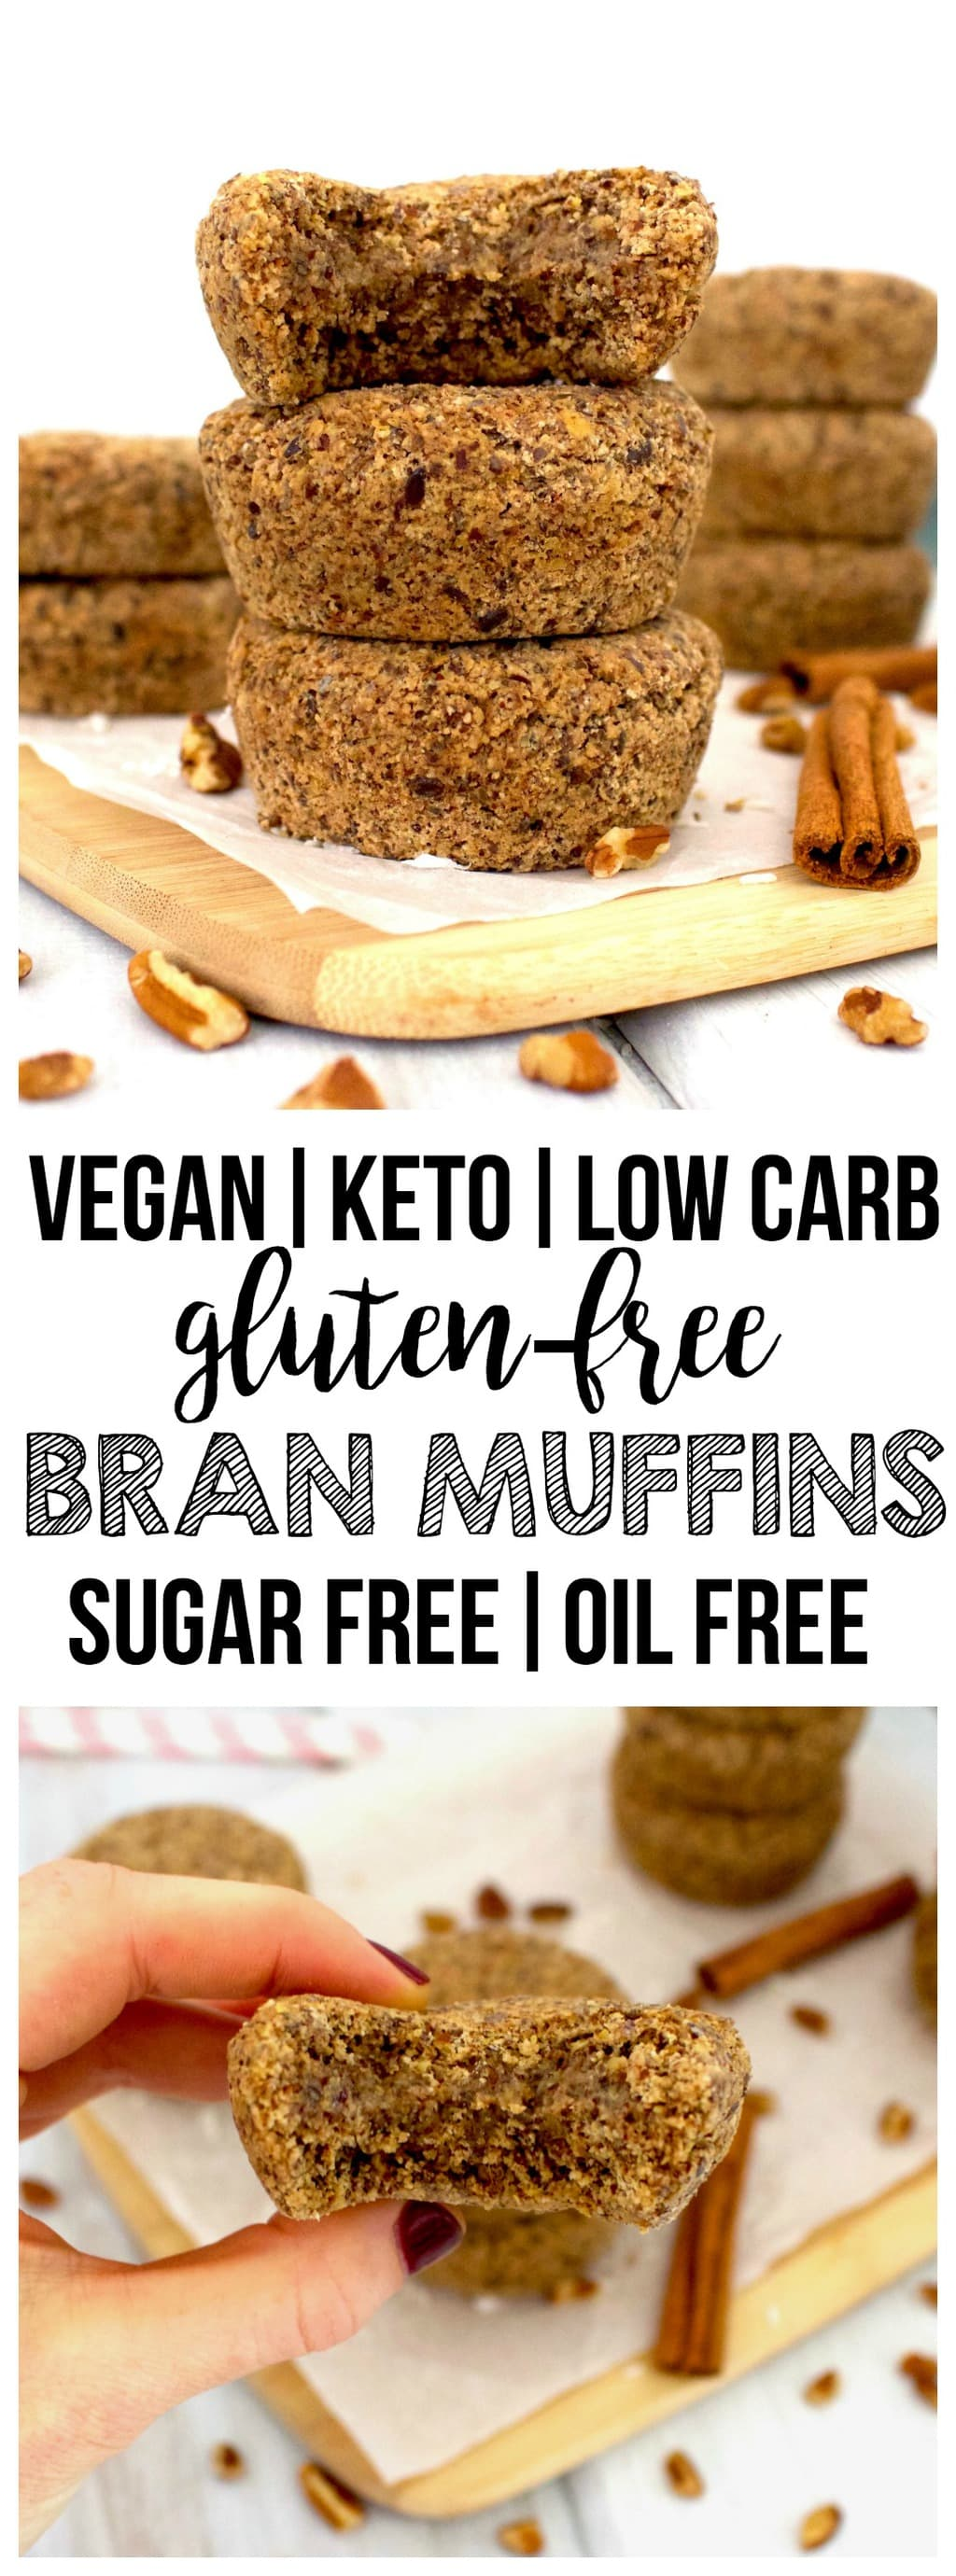 These Keto Vegan Bran Muffins are totally delicious and a perfect, filling breakfast! Loaded with fiber and will keep you full all morning. Gluten-free, sugar-free, low-carb, dairy-free & low-calorie - only 69 calories each!